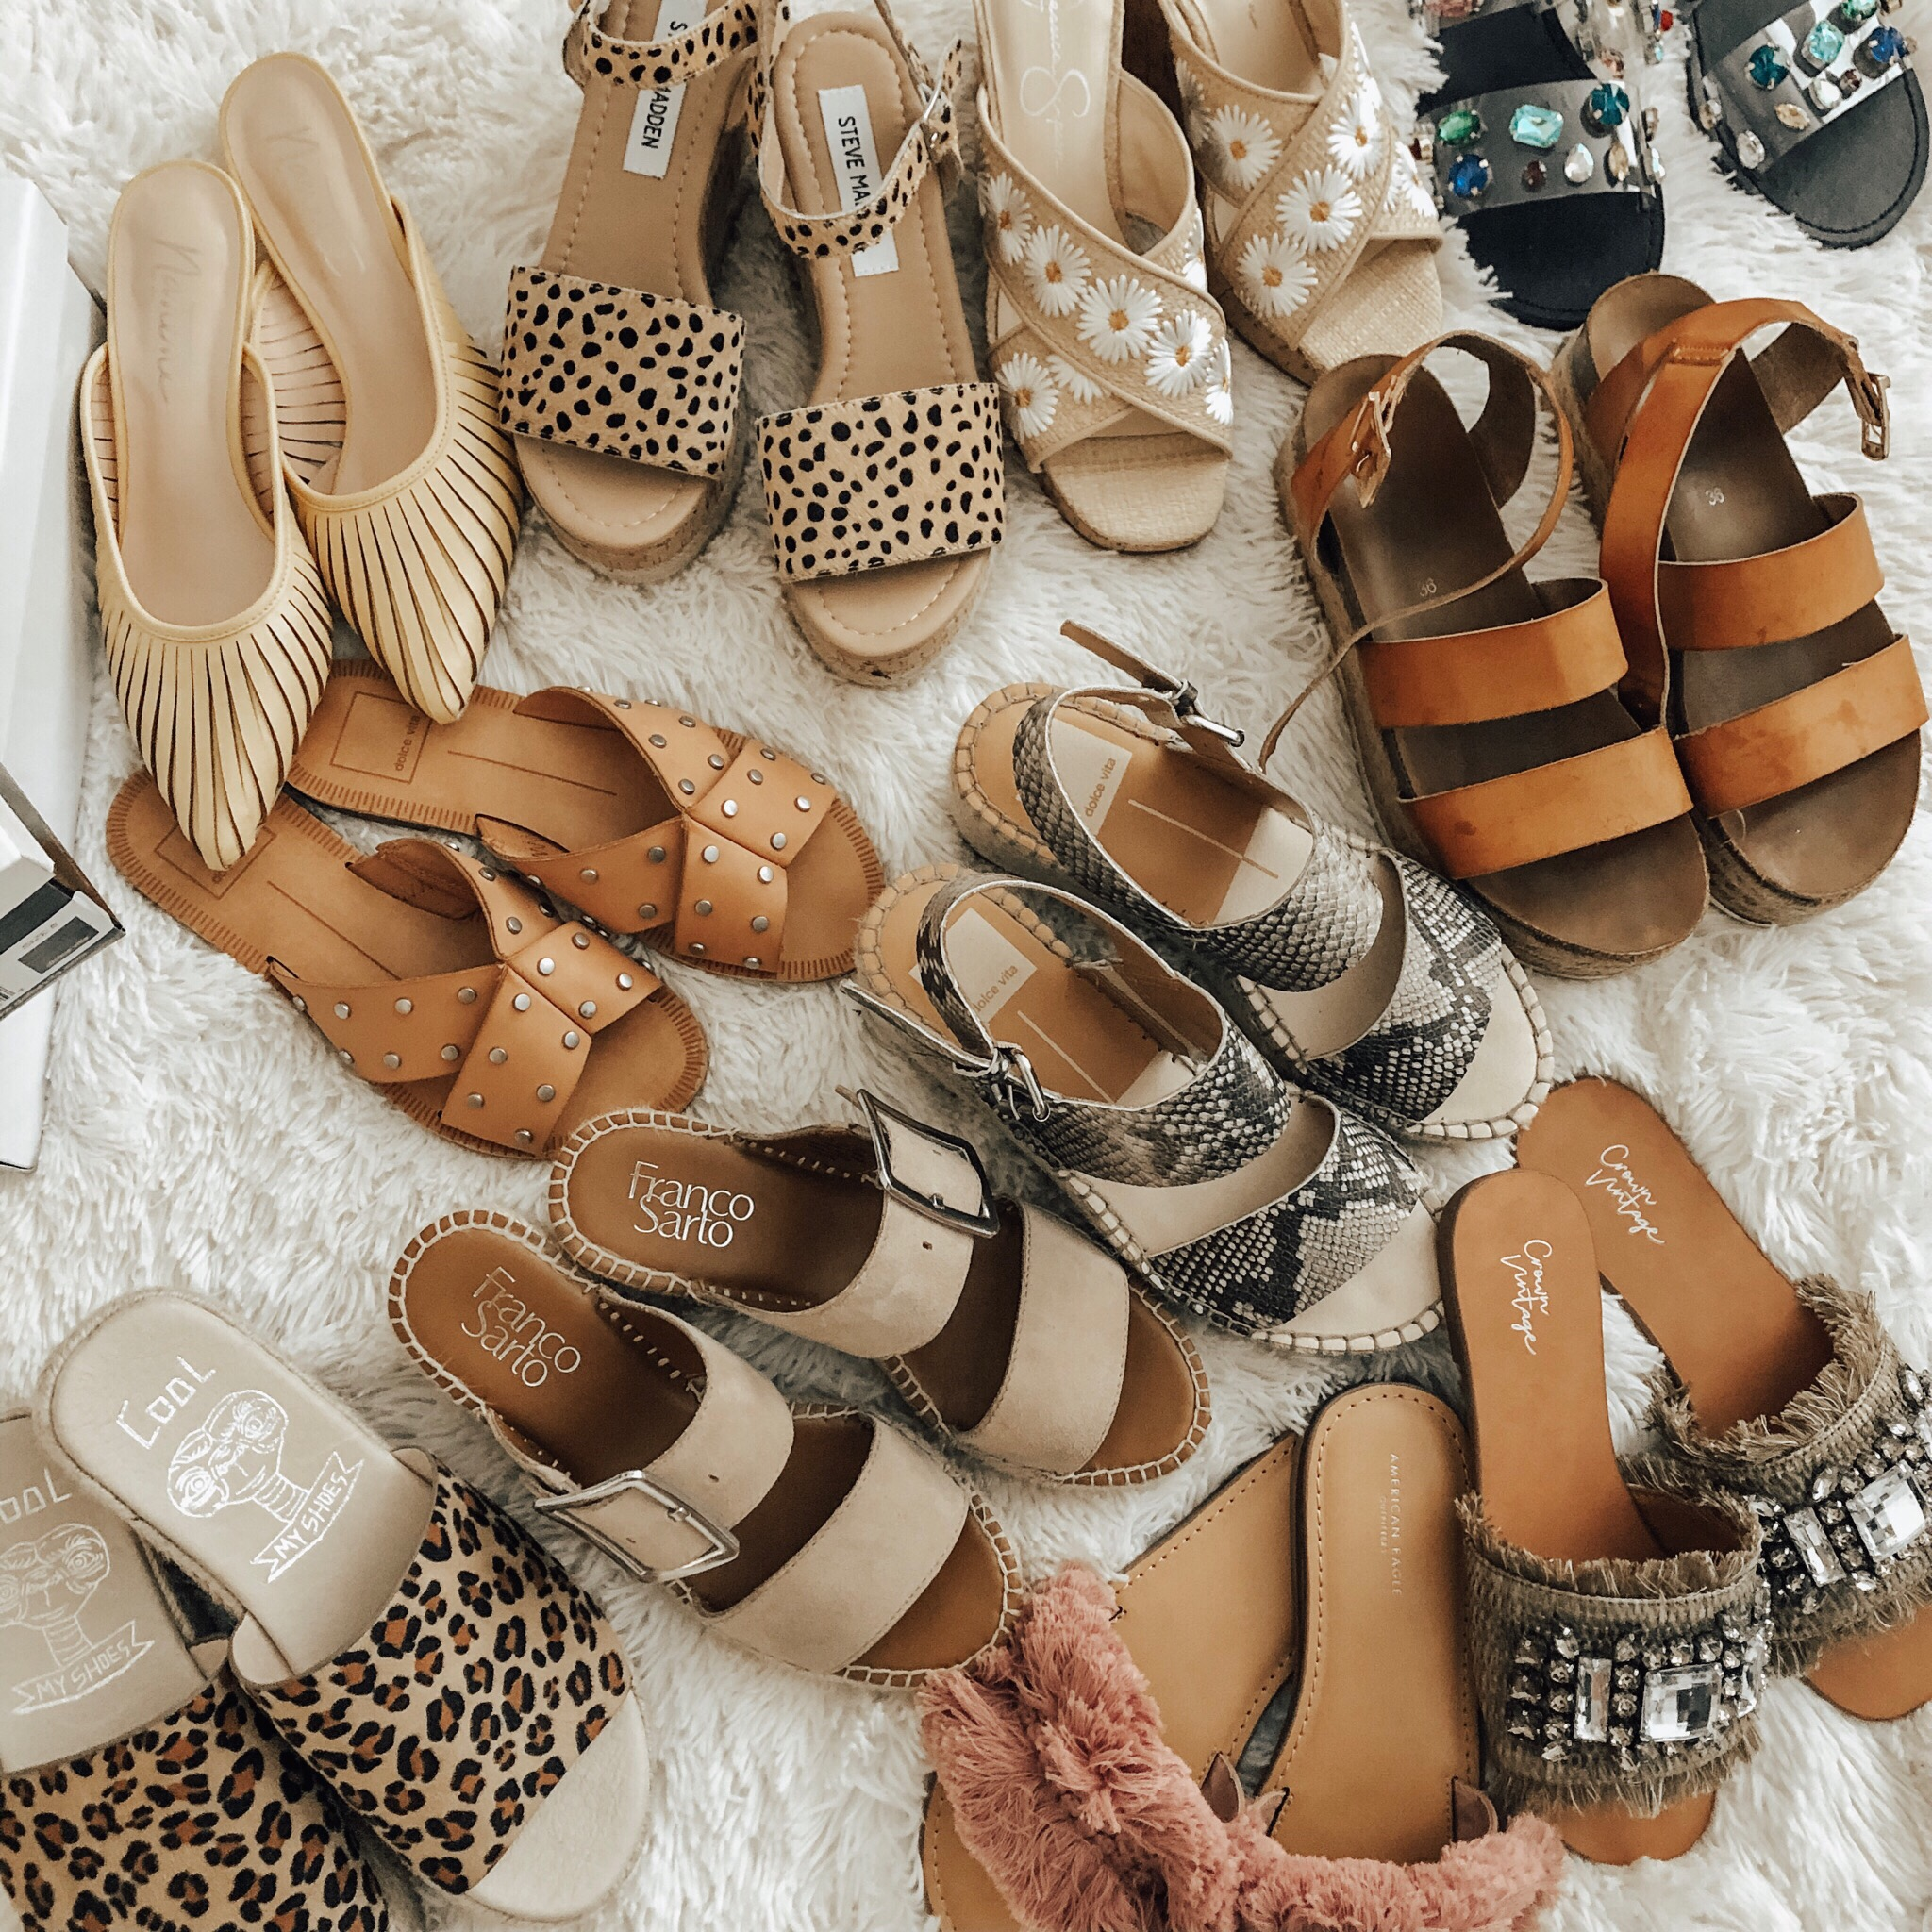 CURRENT SHOE TRENDS- WHAT I'M LOVING AND WHAT YOU NEED- Jaclyn De Leon Style + Are you ready for Spring and Summer? I'm sharing all the current shoe trends for Spring and Summer including espadrilles, mules, sandals and much more. And all are affordable with most on major sale!